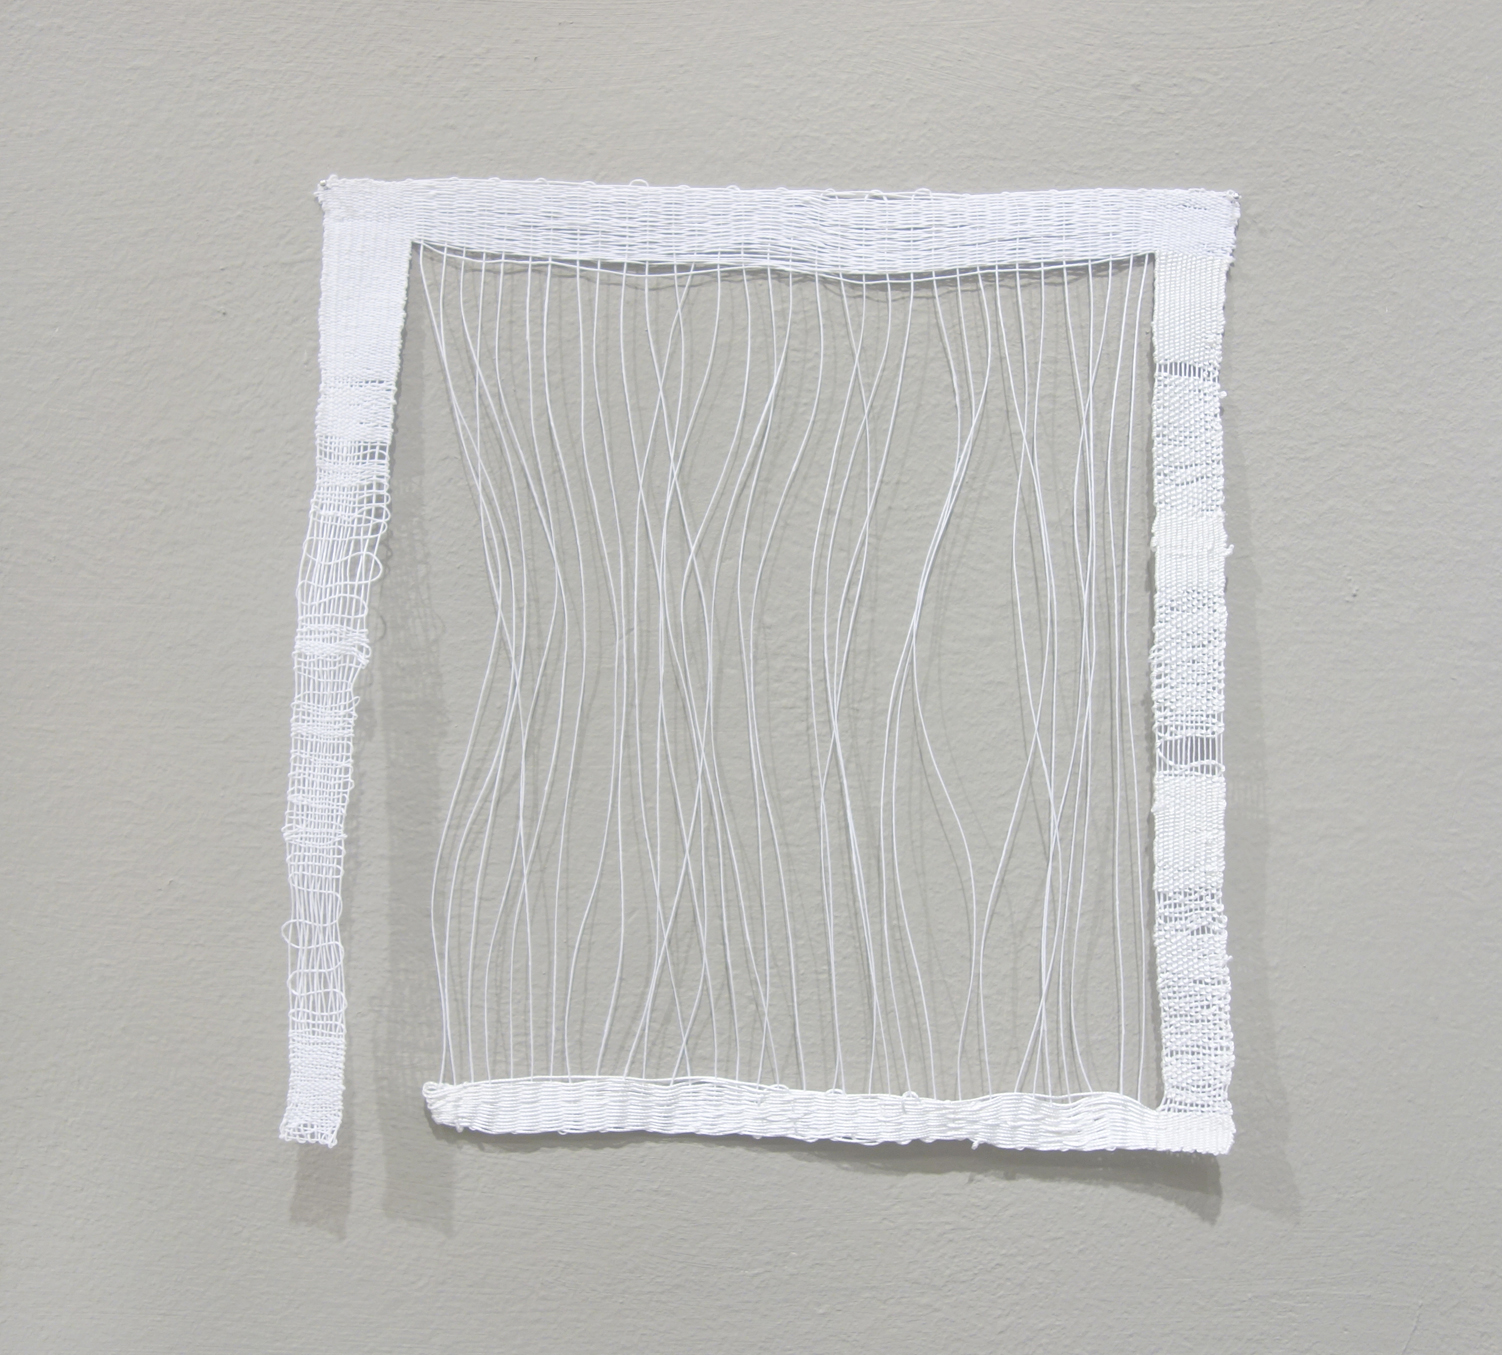 Izziyana Suhaimi, Small Studies of an Everyday Practice VII, 2014, Linen and silk thread; woven, H21 x W19 cm.jpg